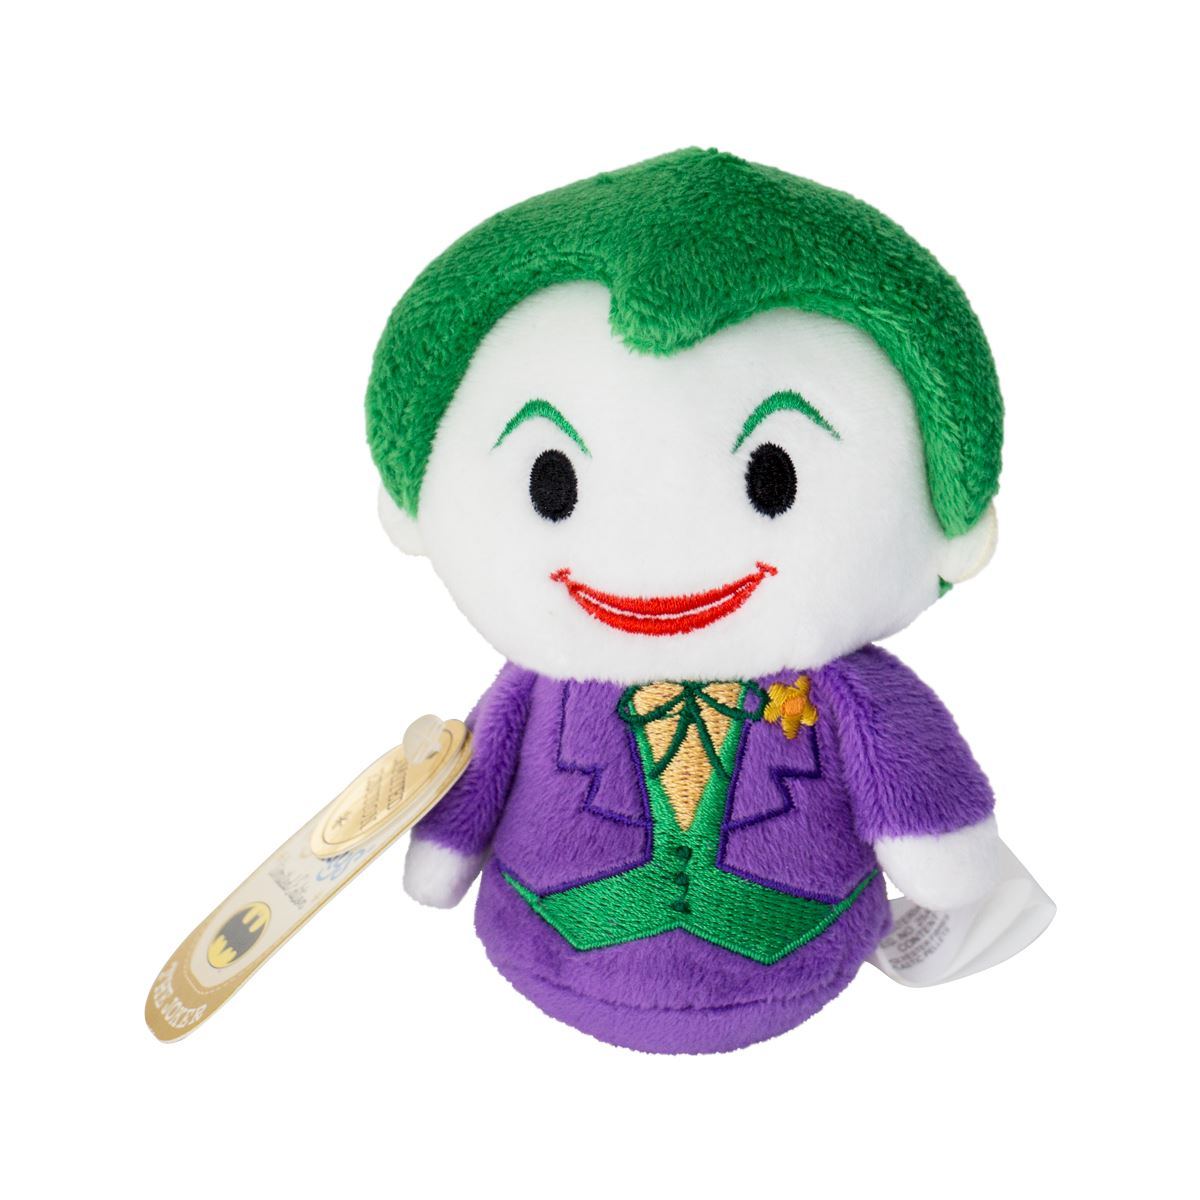 Itty bitty joker  - Sanborns